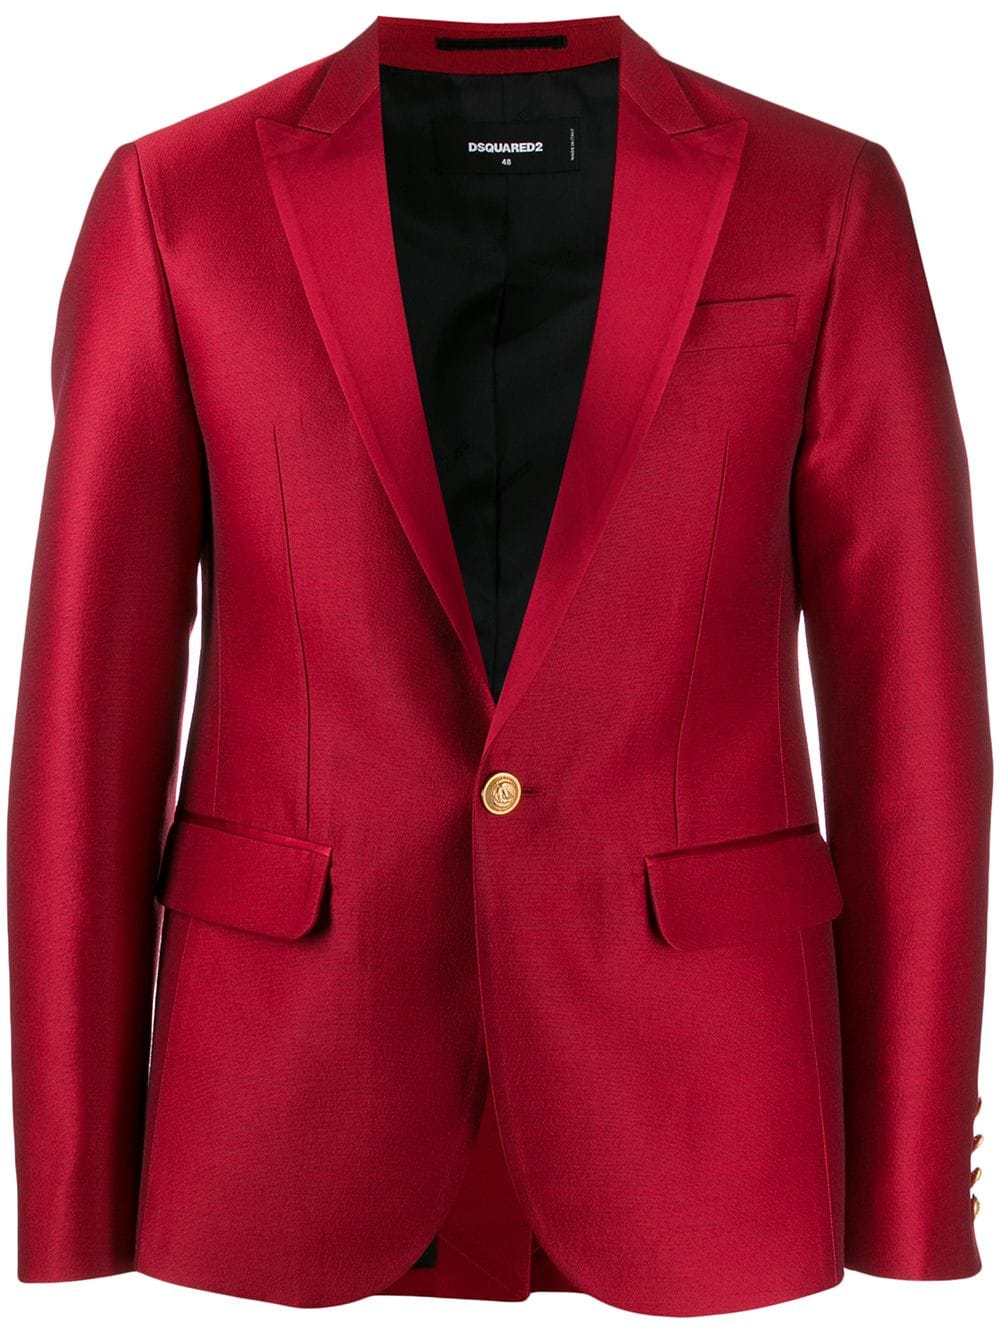 It's A Date: Flirty Looks + Gifts for Valentine's Day, men's red blazer jacket, DSquared2 tailored red blazer jacket